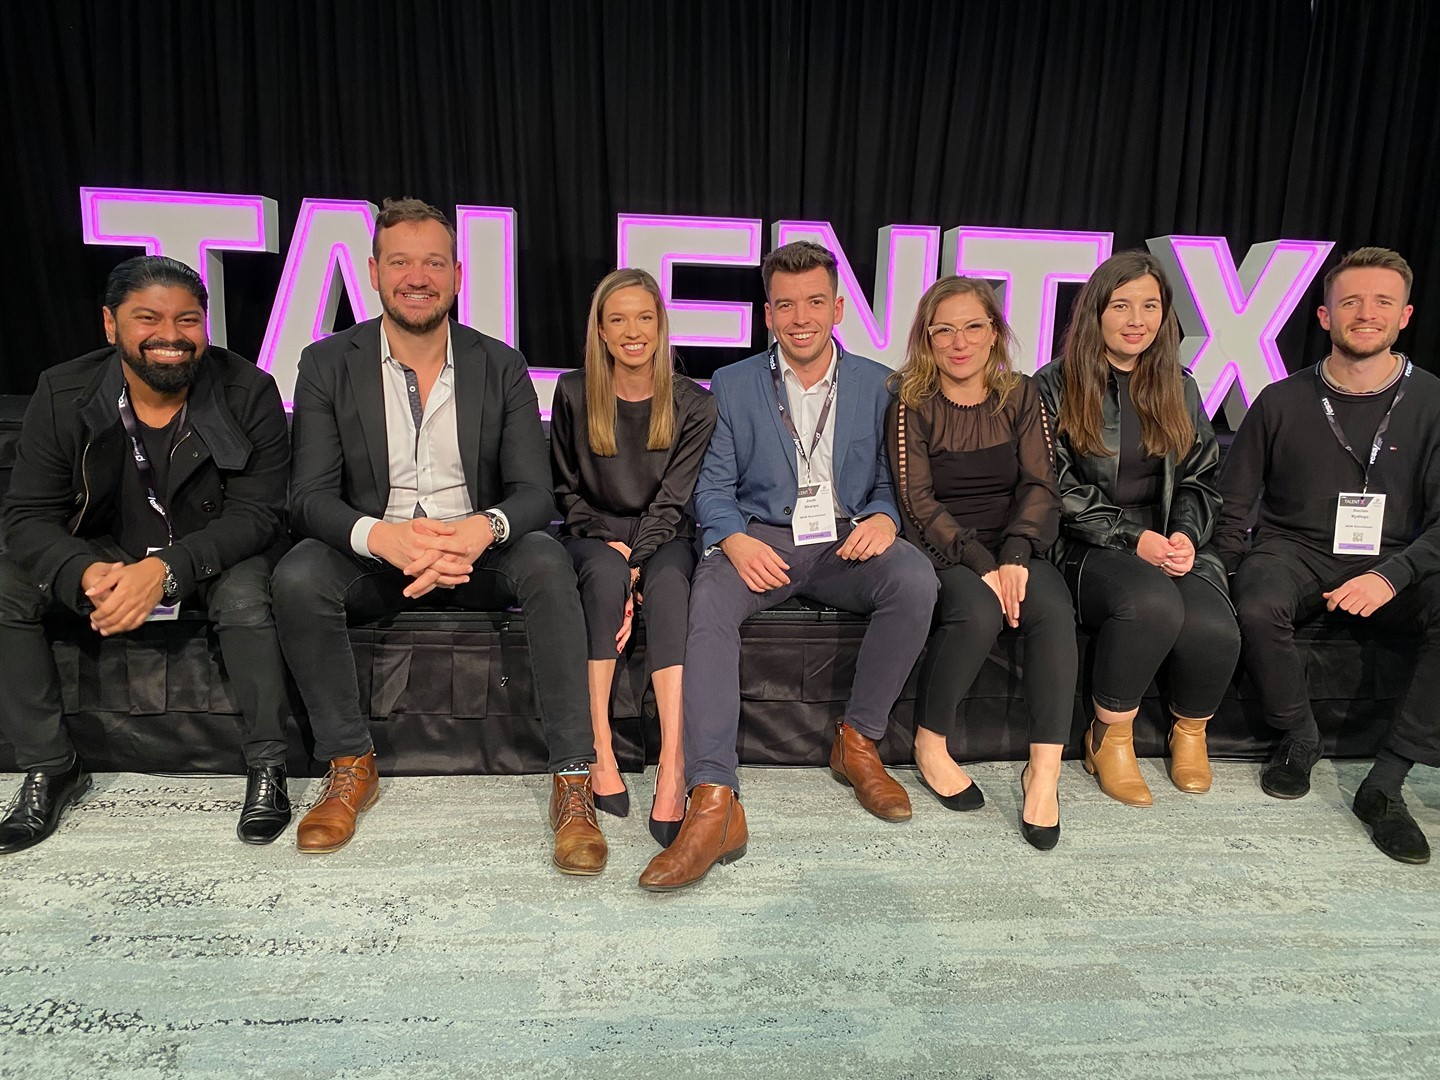 WOW! Almost a week since our team was at the RCSA's Talent X and our co-founder Emily Mcleod took to the stage for a brilliant panel discussion. A huge thank you to the organisers, exhibitors, pitchers and panellists for a superb event. See you next year!